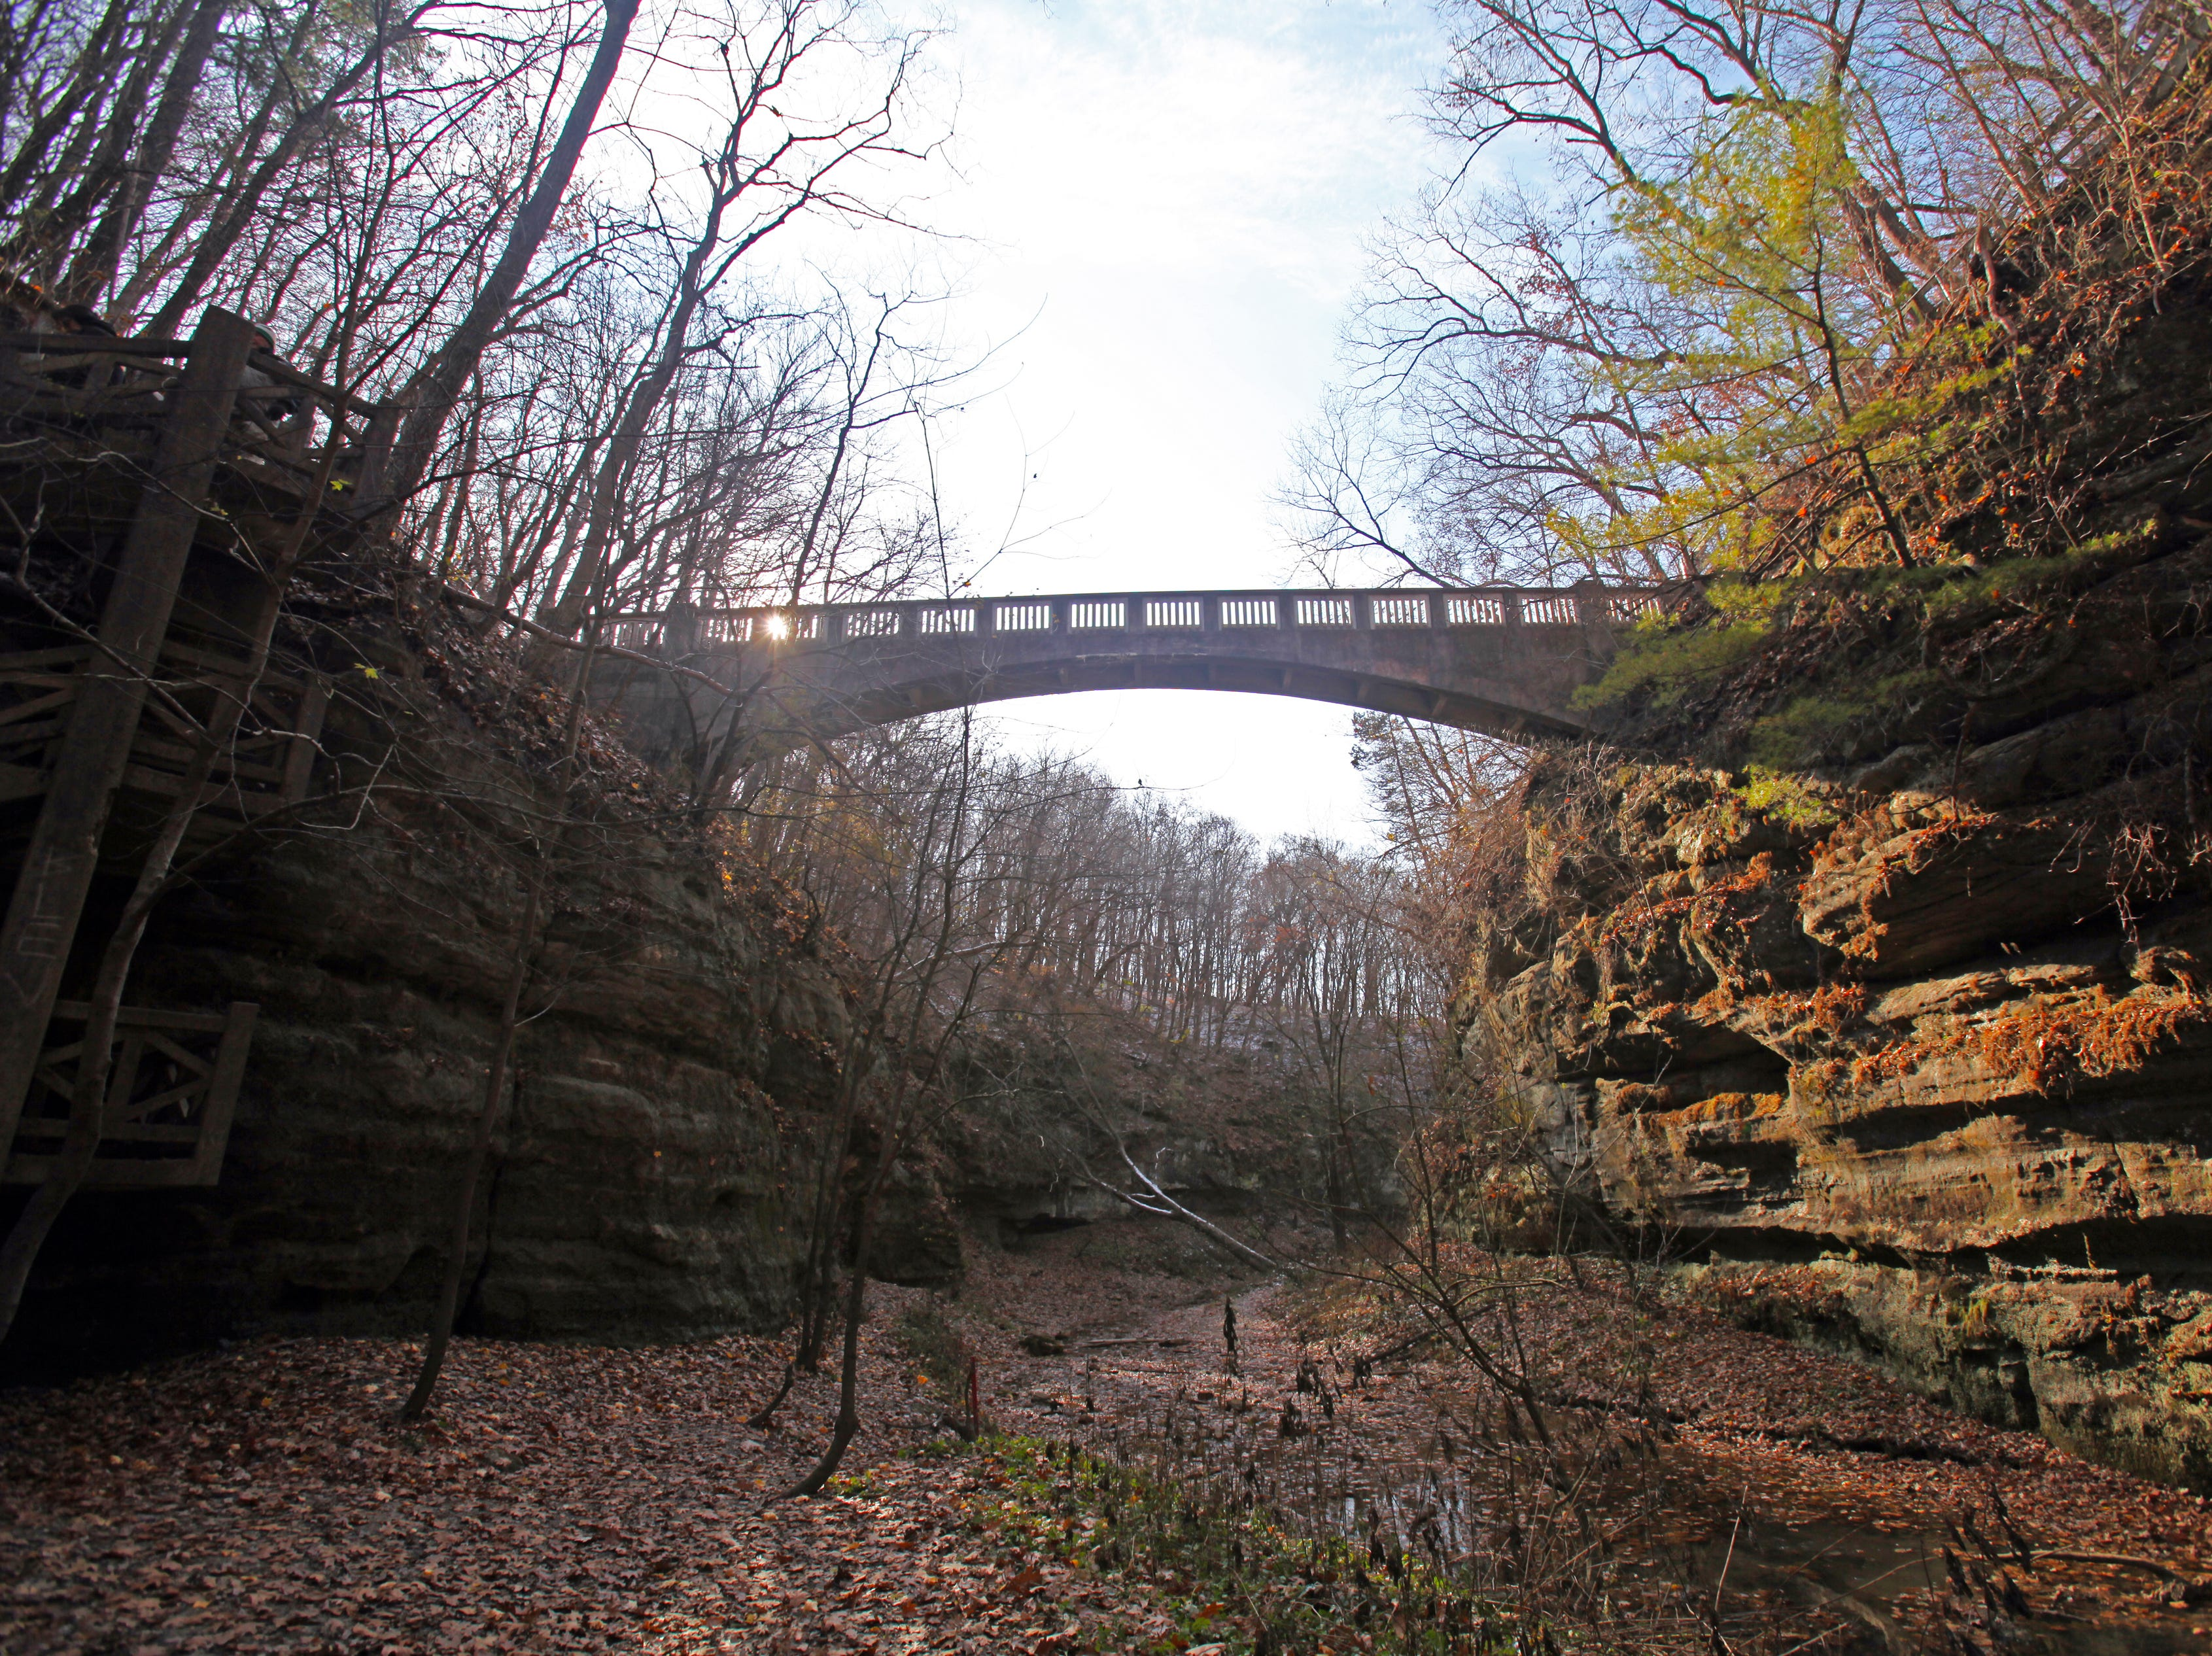 A bridge crosses over the lower dells in Matthiessen State Park near Oglesby, Illinois.